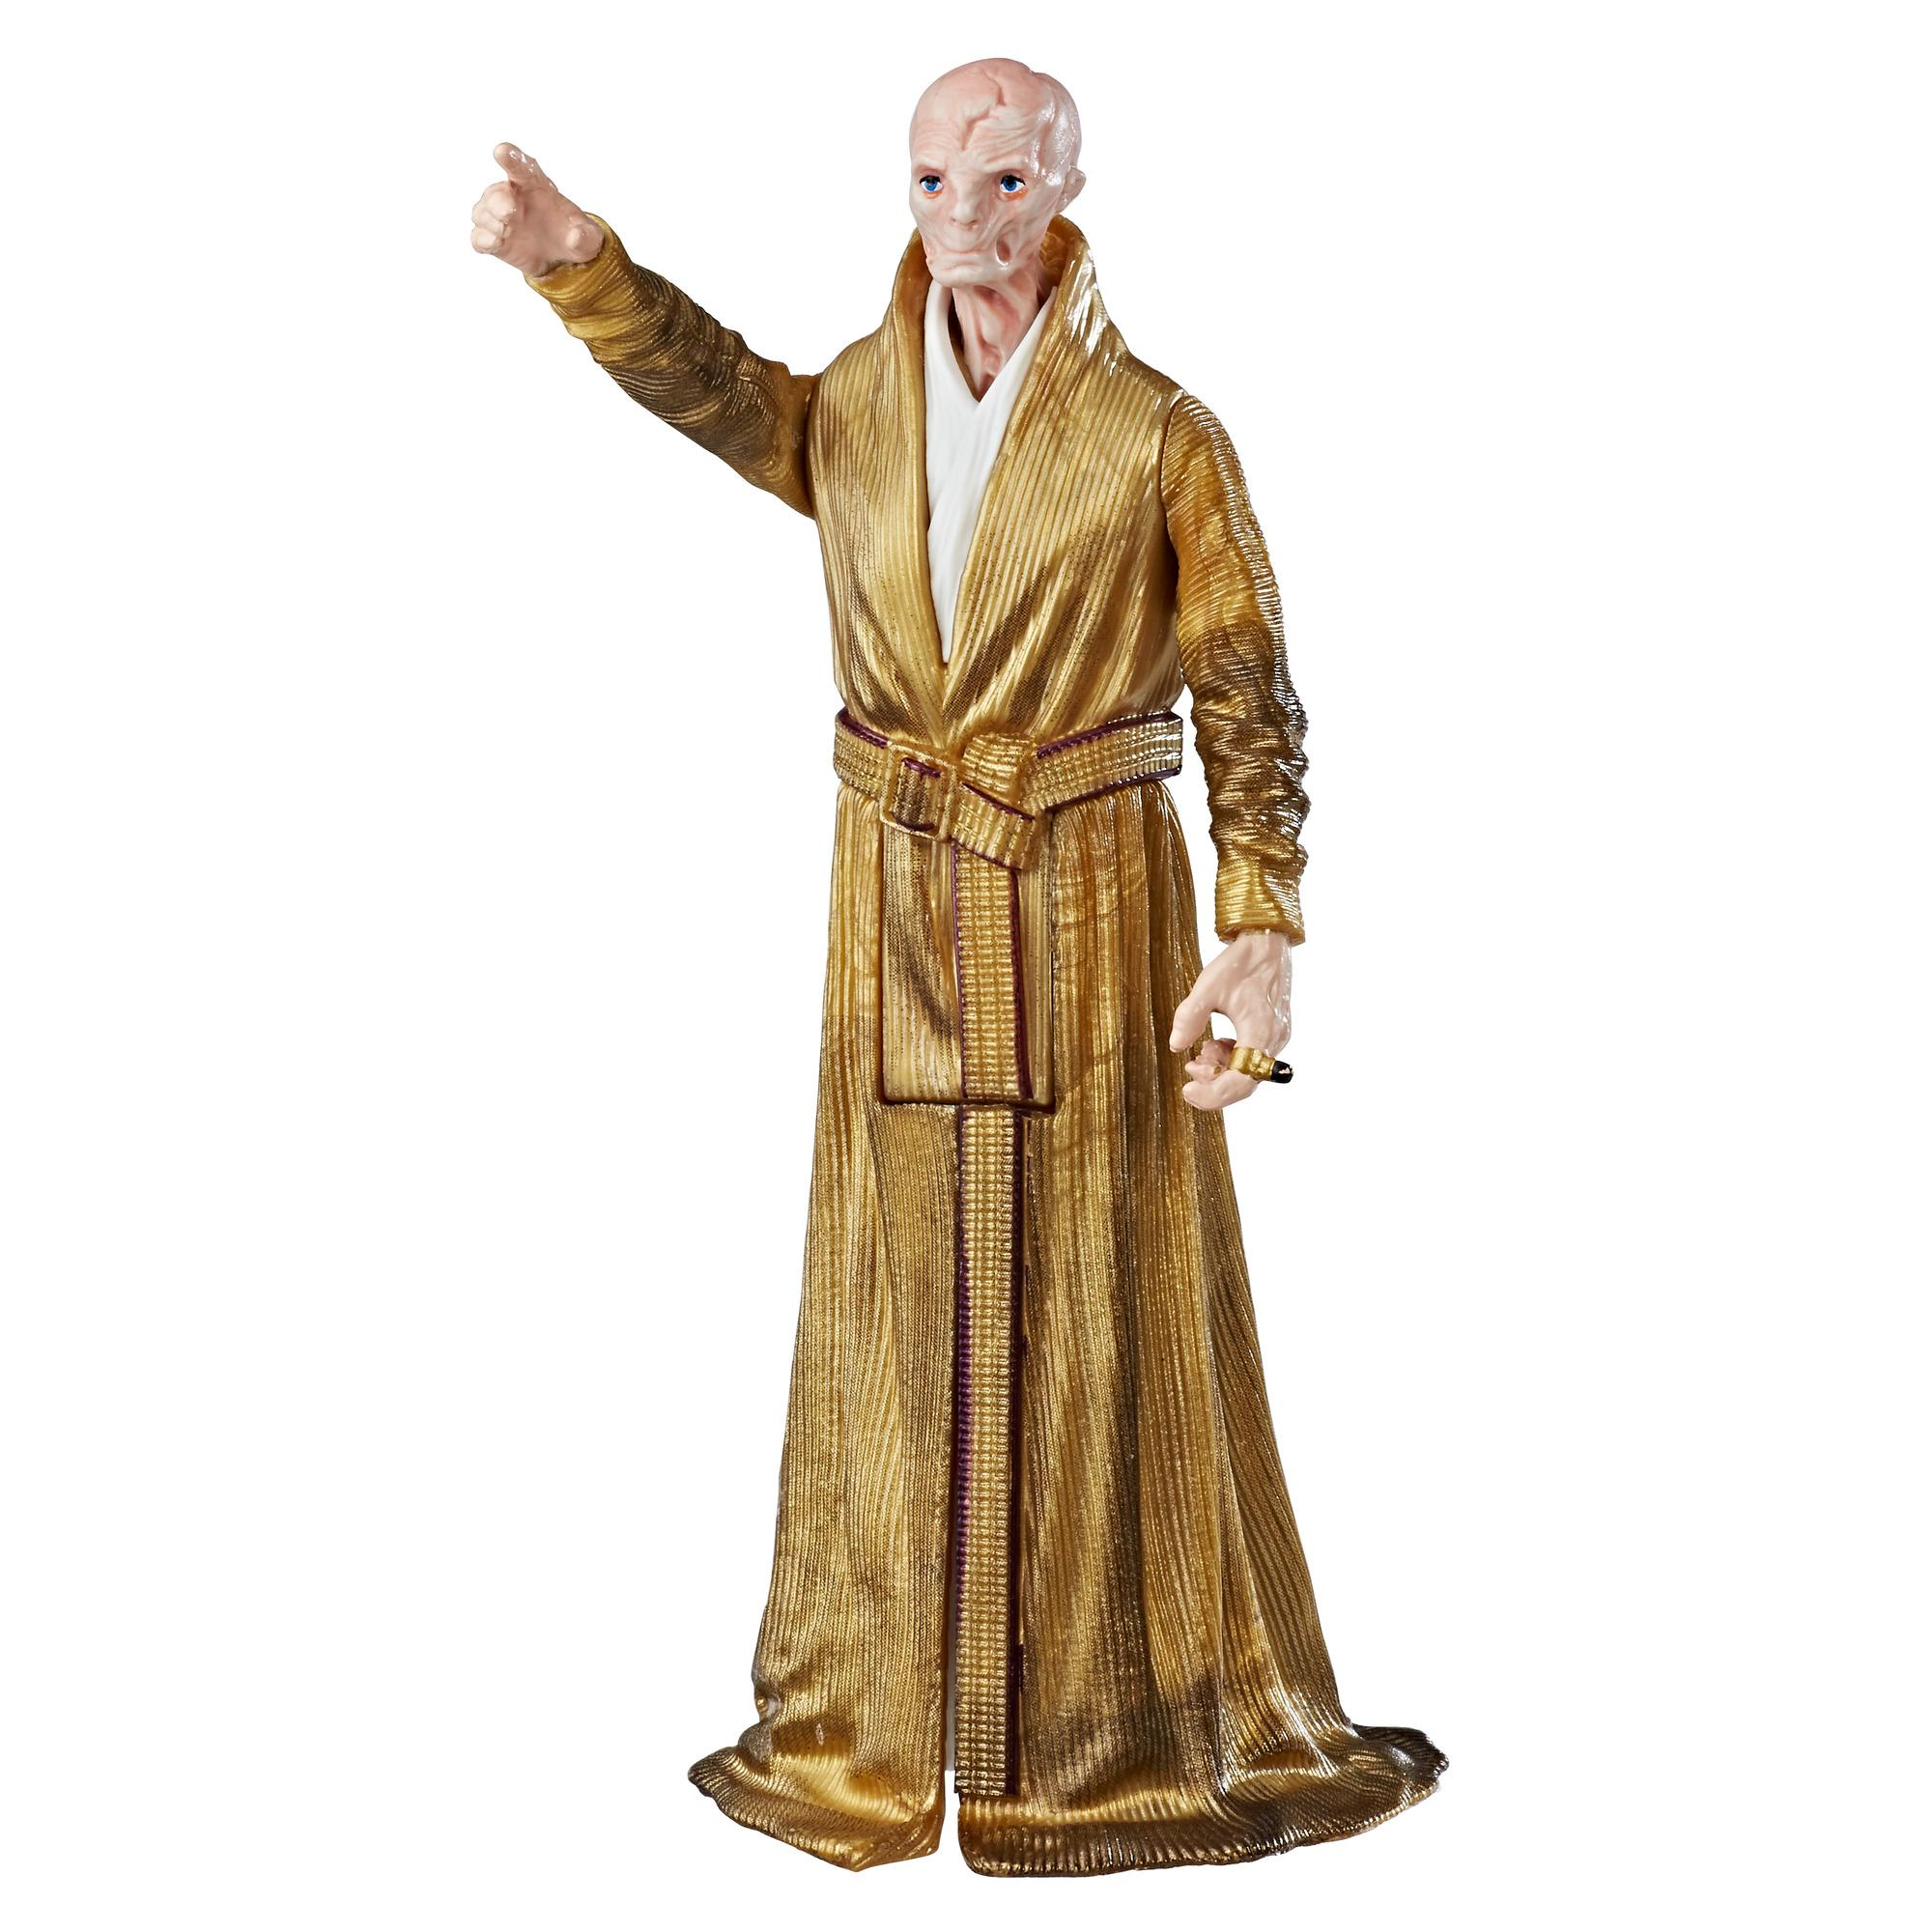 Star Wars Solo Film 3.75 FORCE LINK 2.0 Figur Supreme Leader Snoke